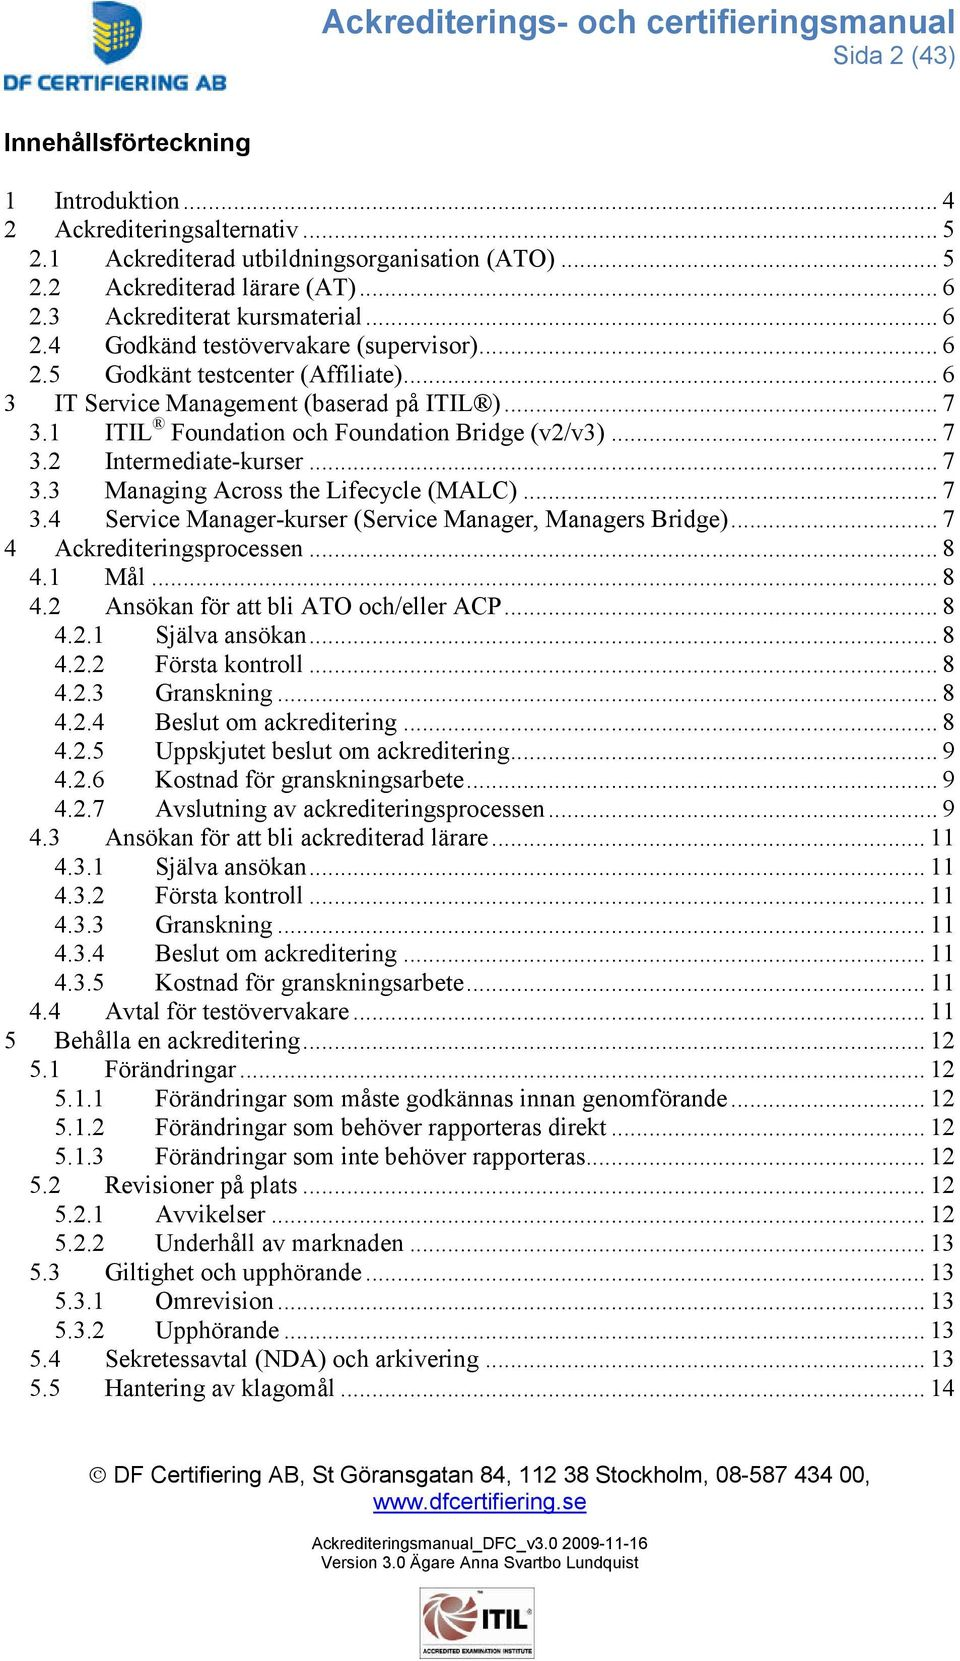 1 ITIL Foundation och Foundation Bridge (v2/v3)... 7 3.2 Intermediate-kurser... 7 3.3 Managing Across the Lifecycle (MALC)... 7 3.4 Service Manager-kurser (Service Manager, Managers Bridge).